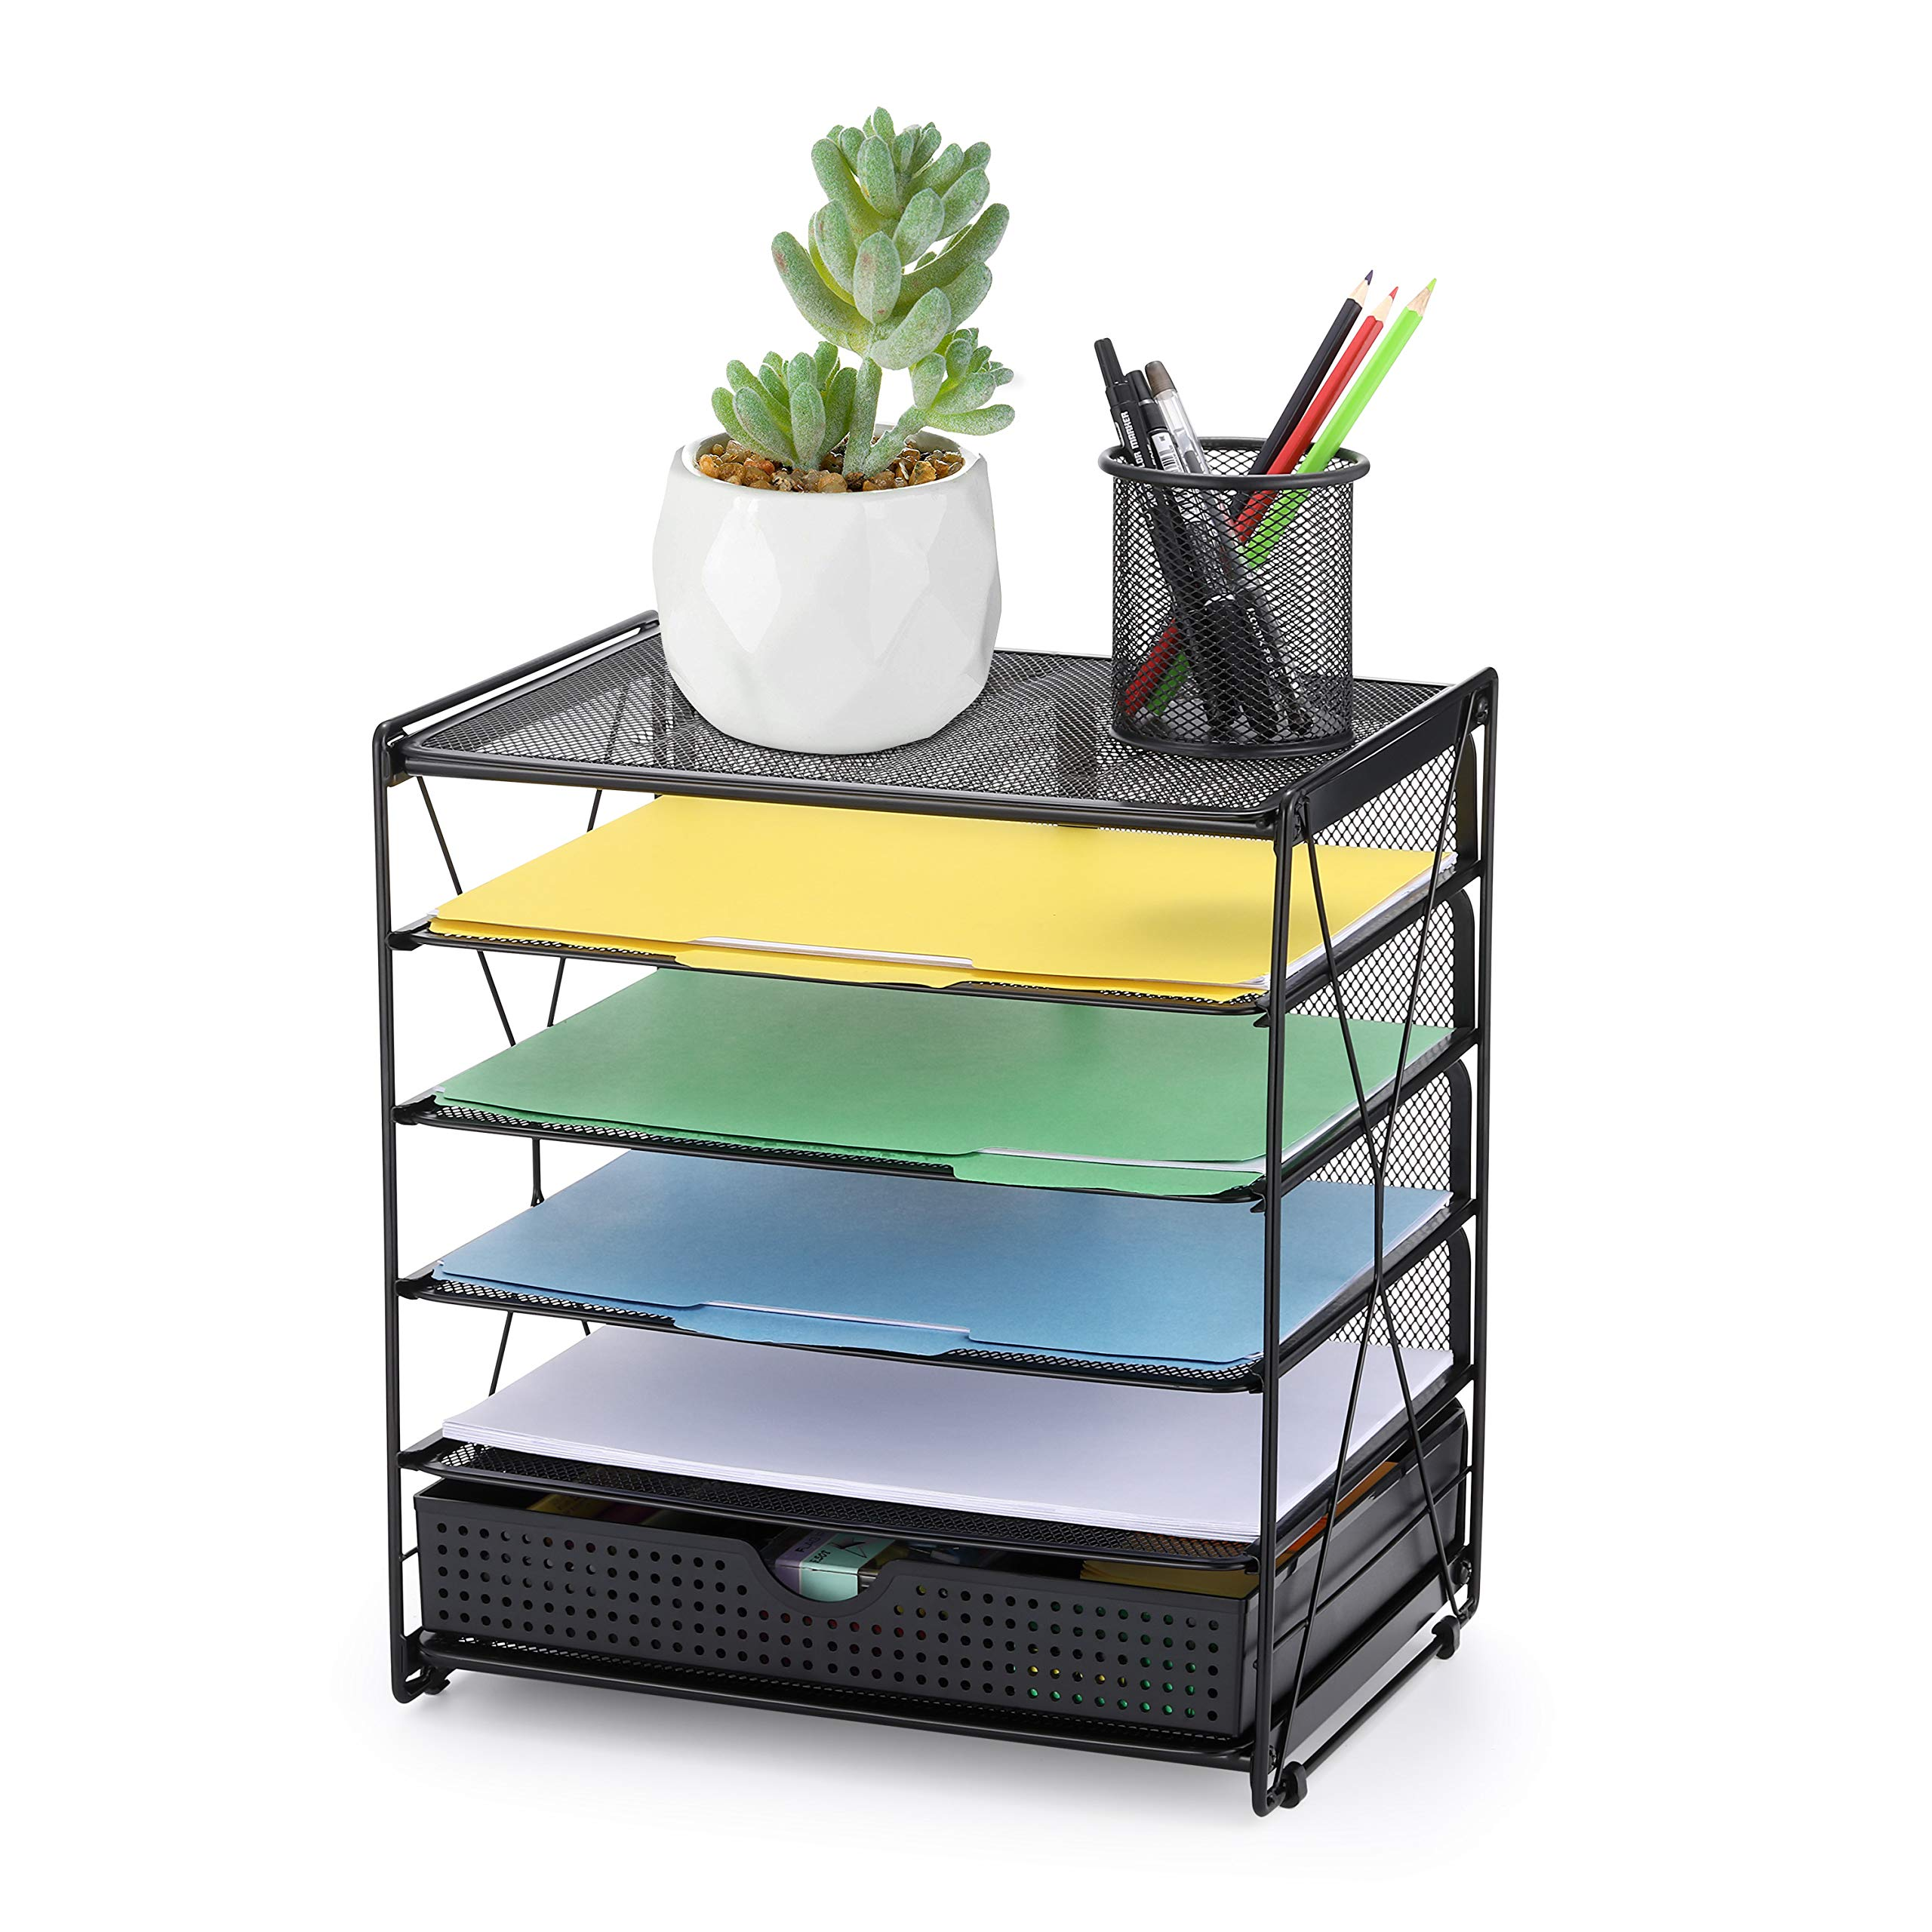 CAXXA 36 Tier Mesh Tray Desktop Organizer with Adjustable Drawer